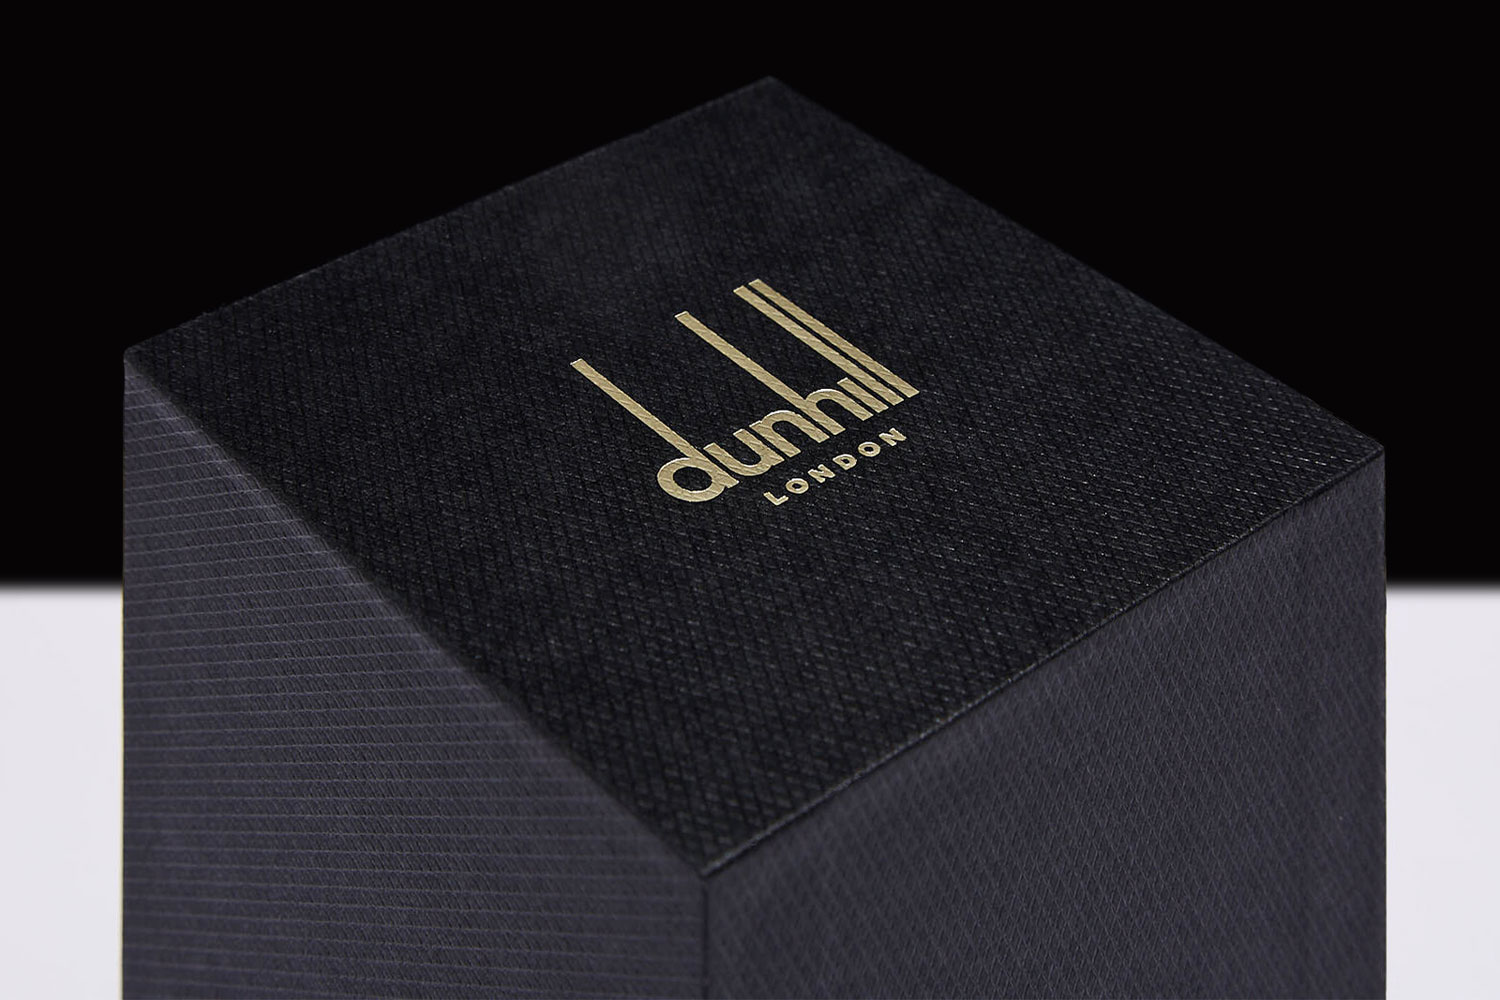 Progress Packaging Dunhill London Luxury Collection Rigid Boxes Sharp Edge Custom Embossed Paper Foil Block Bespoke Branded Retail 02